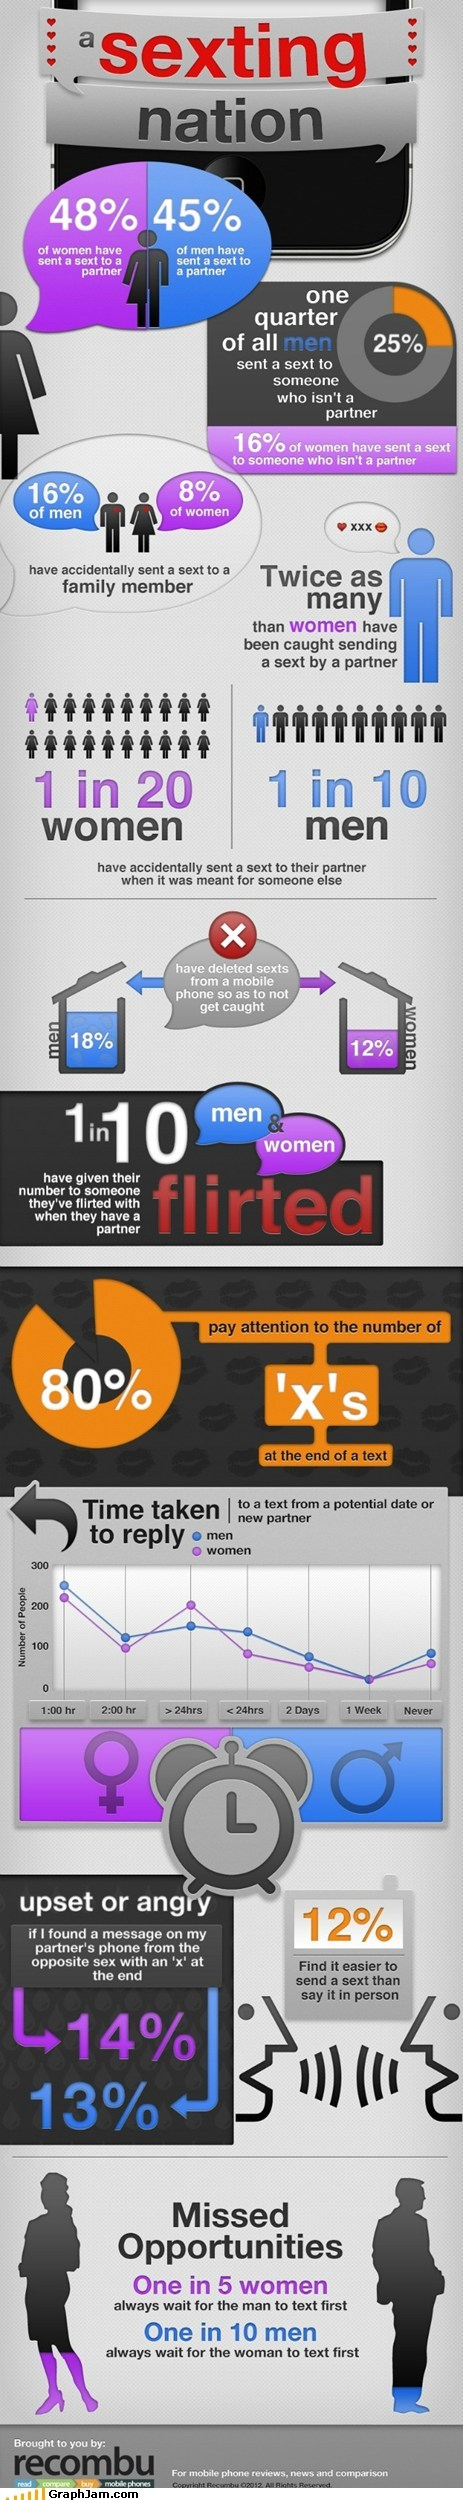 infographic phones sexting - 6411305984